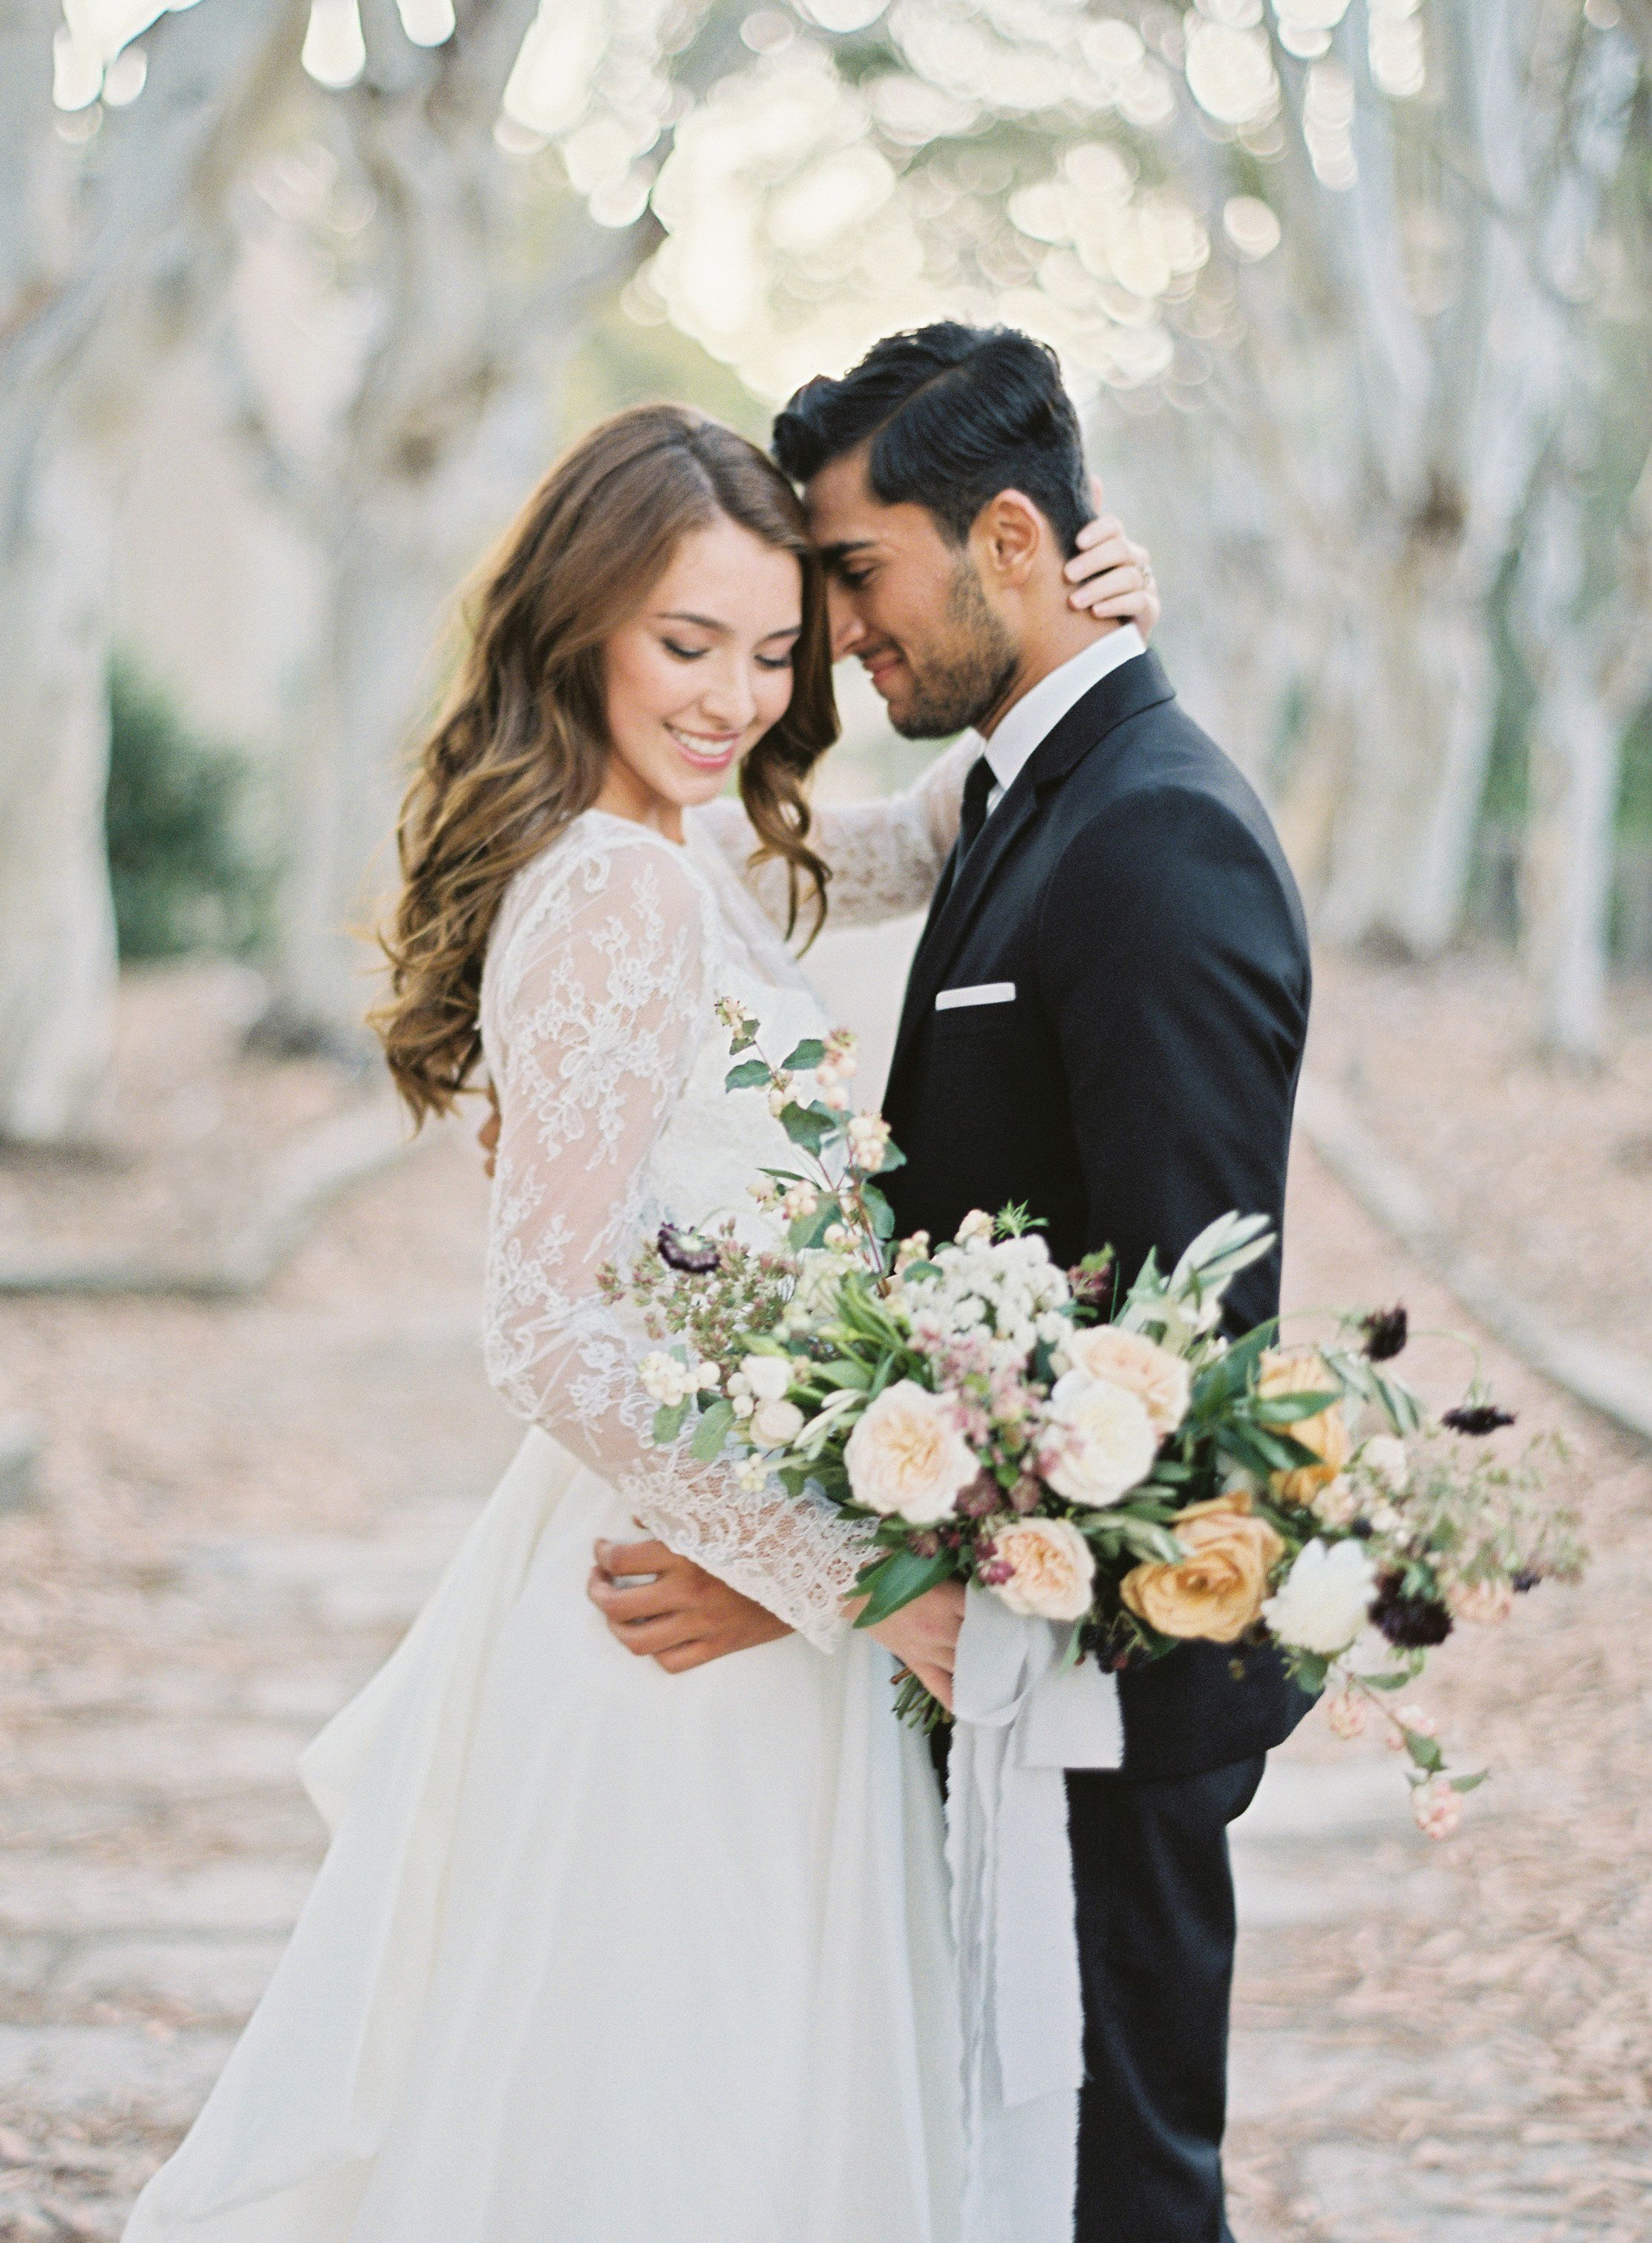 Old World Romance Wedding Inspiration - Once Wed  Wedding couple